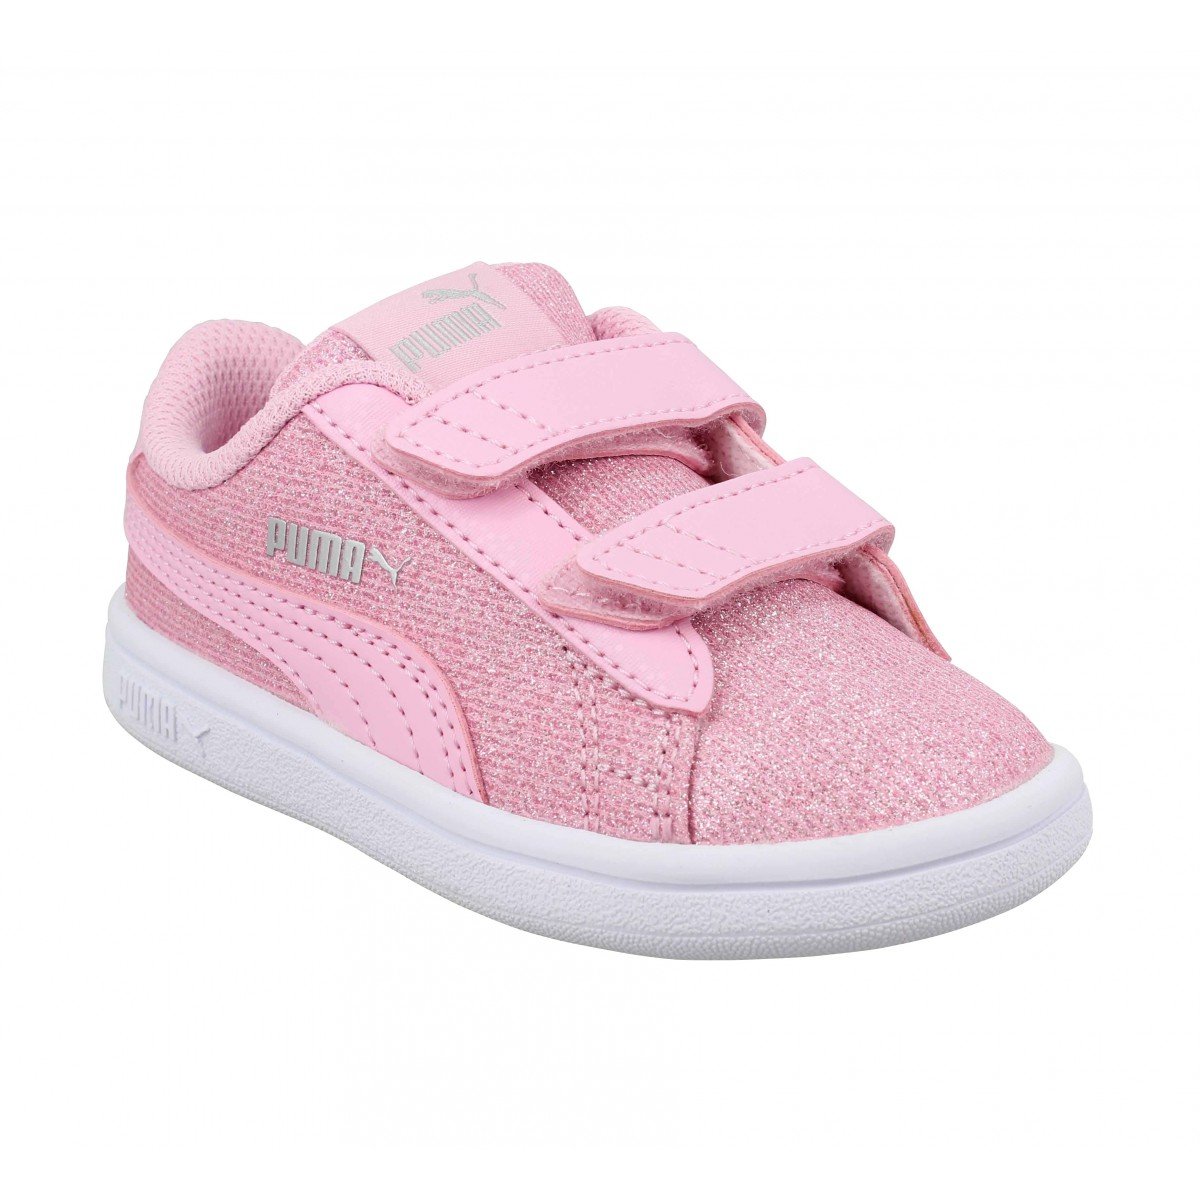 Baskets PUMA Smash Glitz toile Enfant Pink